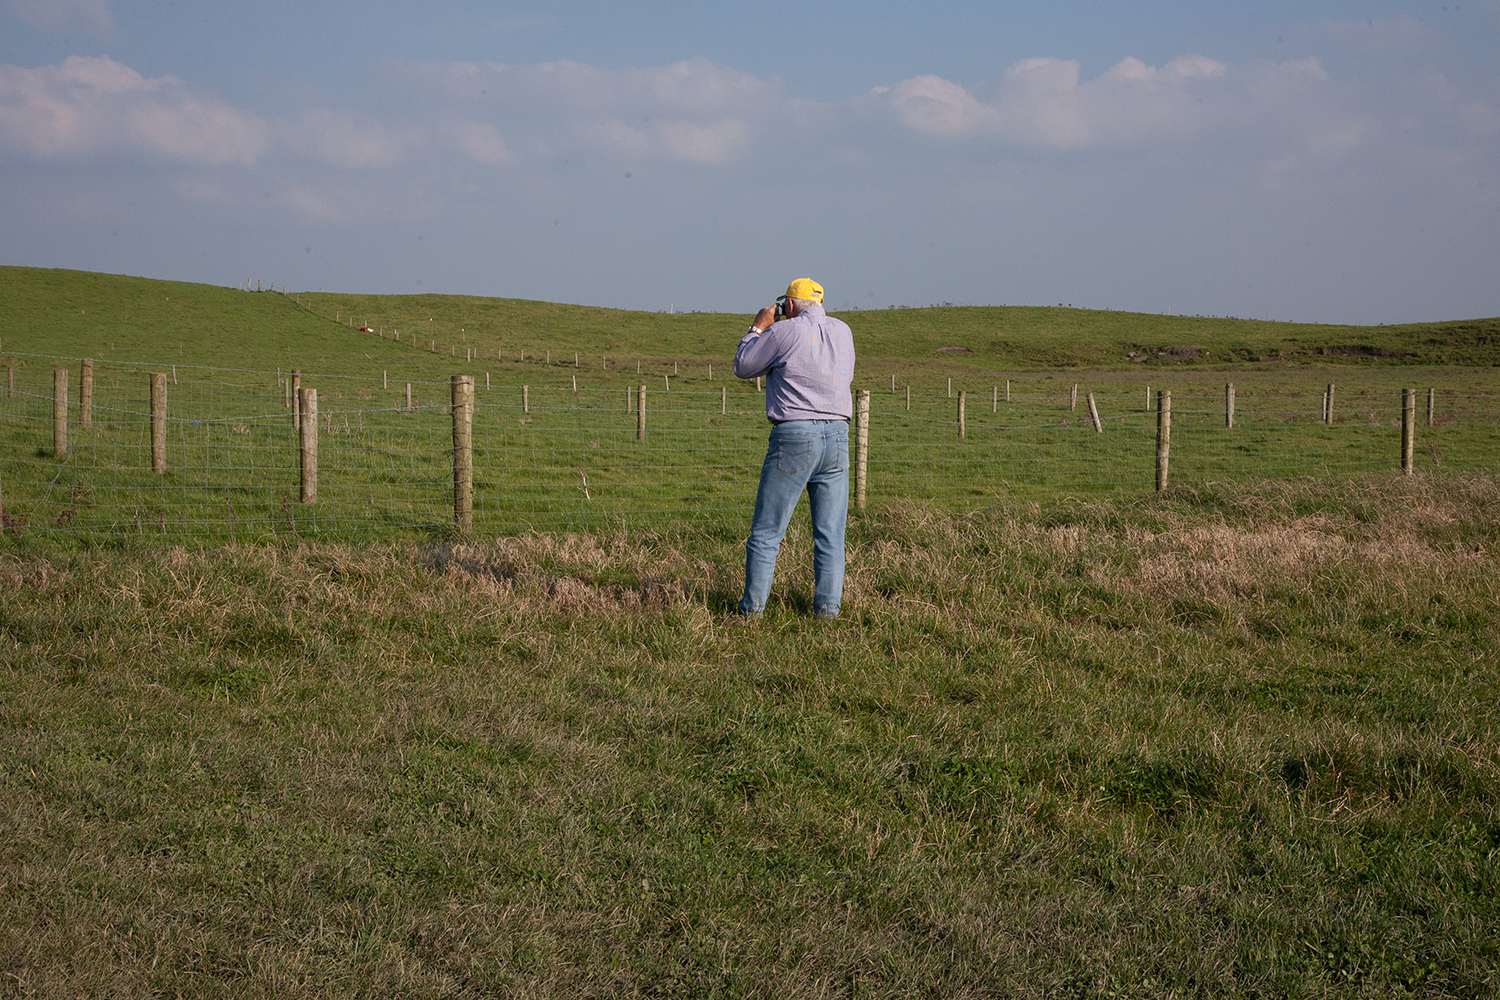 A documentary photograph of a tourist taking photograph of a field in the west of ireland